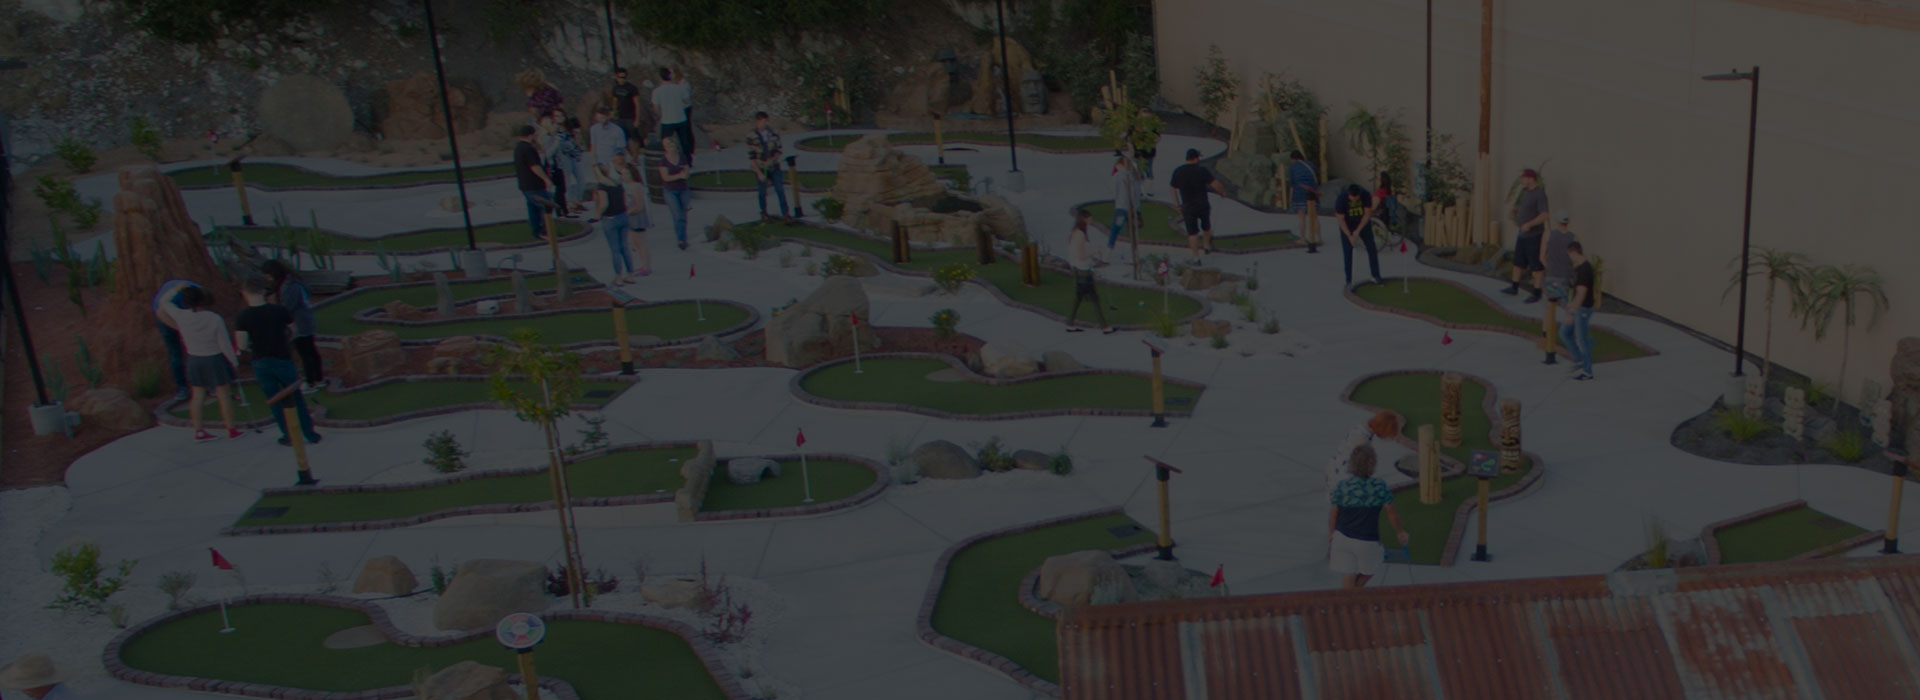 Mini Golf - Atascadero Miniature Golf - Mr Putters Putt-Putt